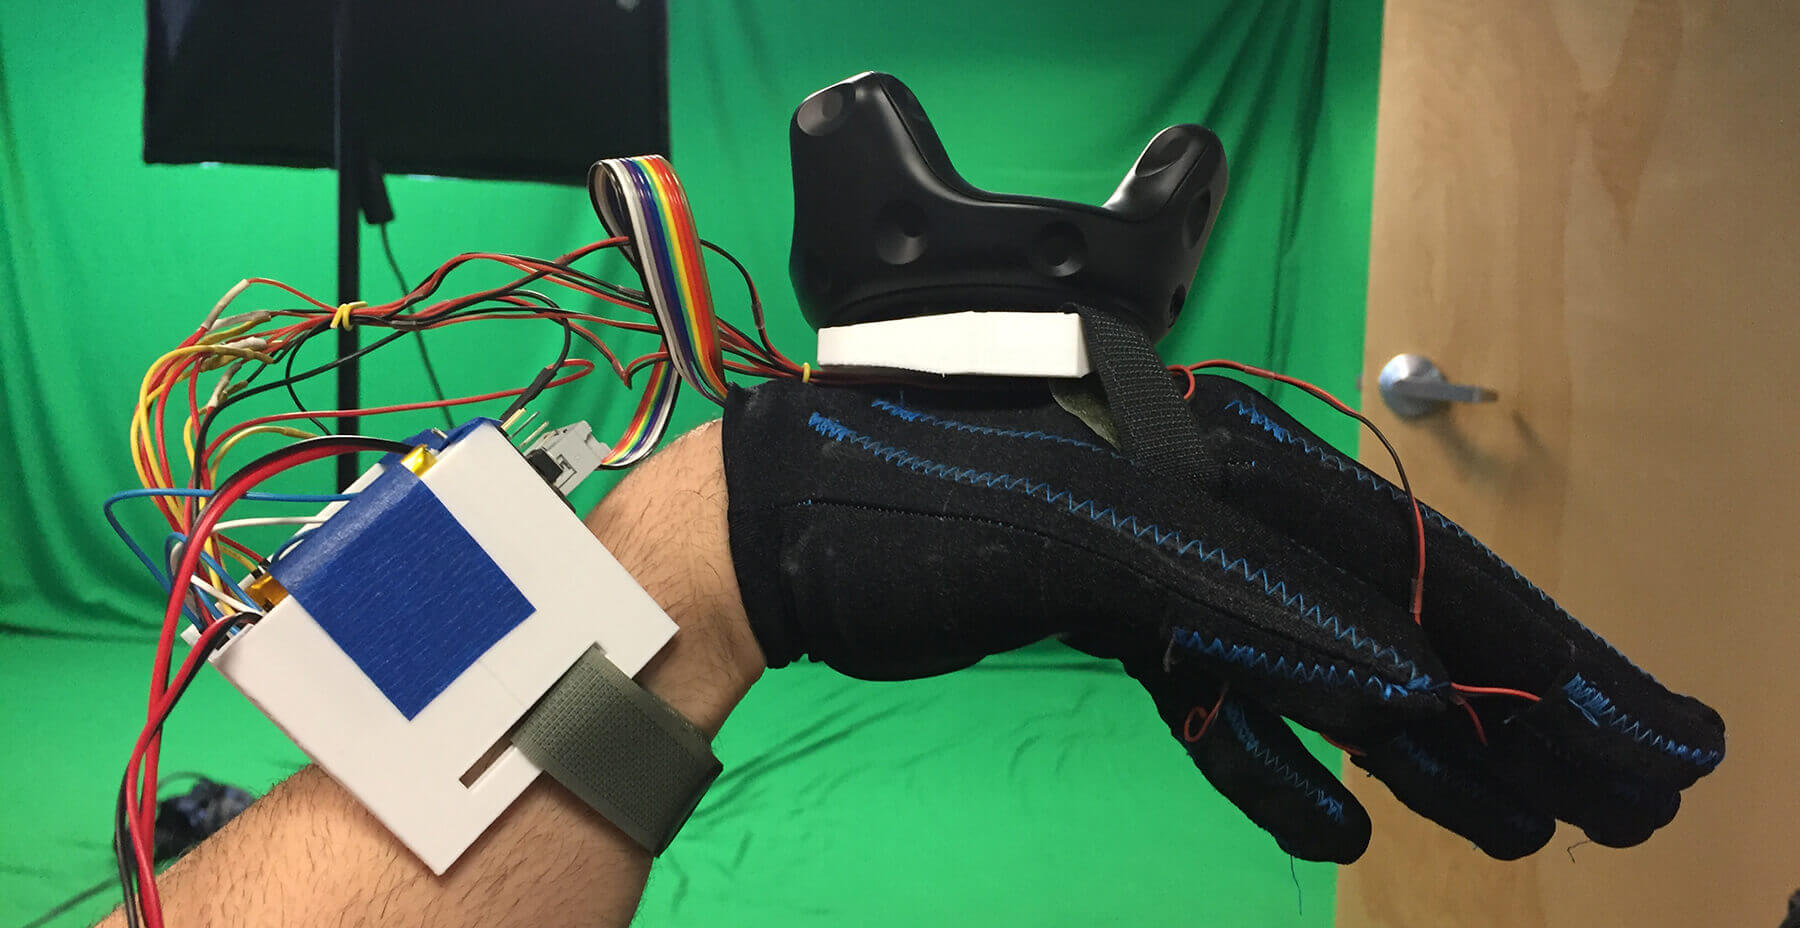 Virtual reality haptic glove with tracker